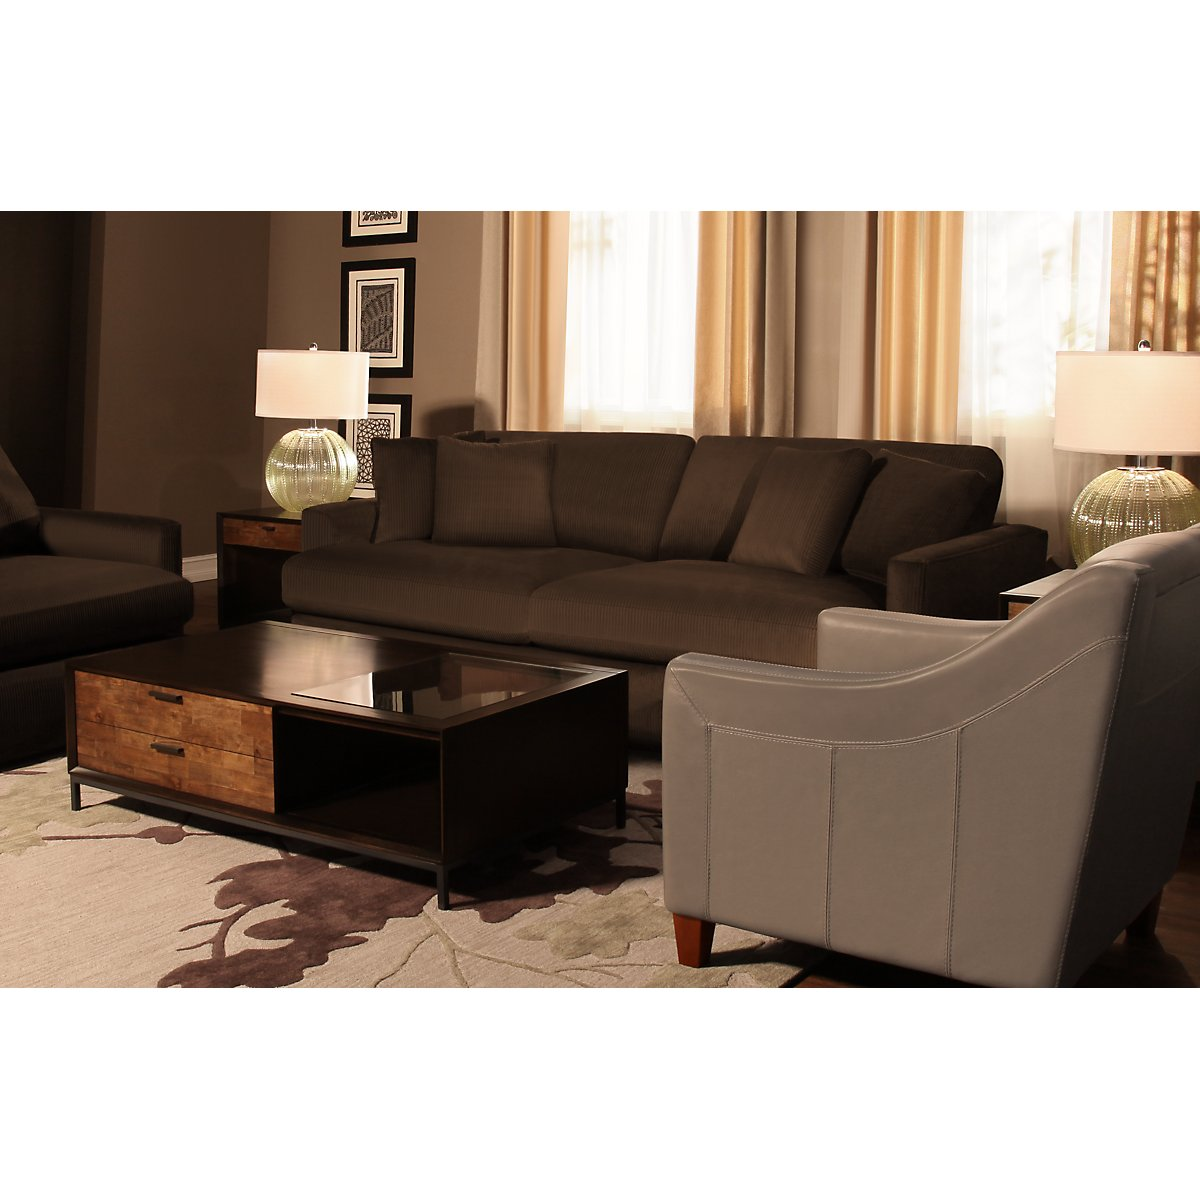 Tara2 Dark Brown Microfiber Sofa | Living Room - Sofas | City Furniture